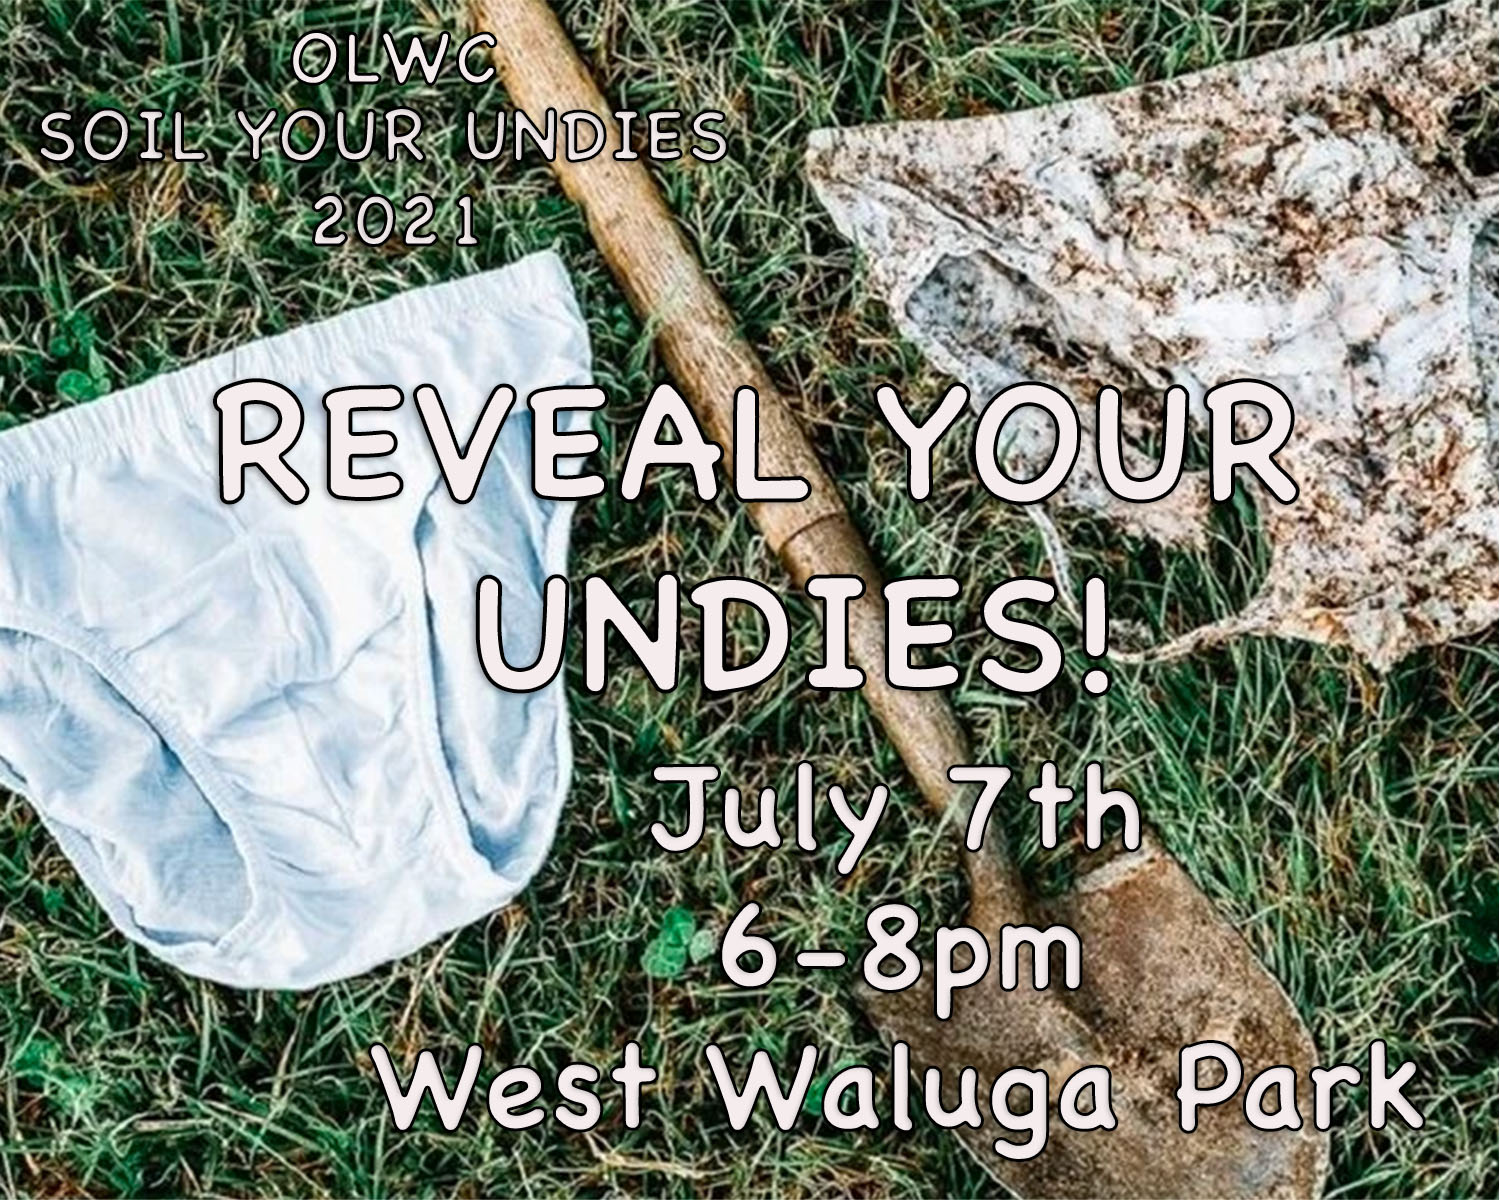 Reveal Your Undies! July 7, 6-8 pm, West Waluga Park